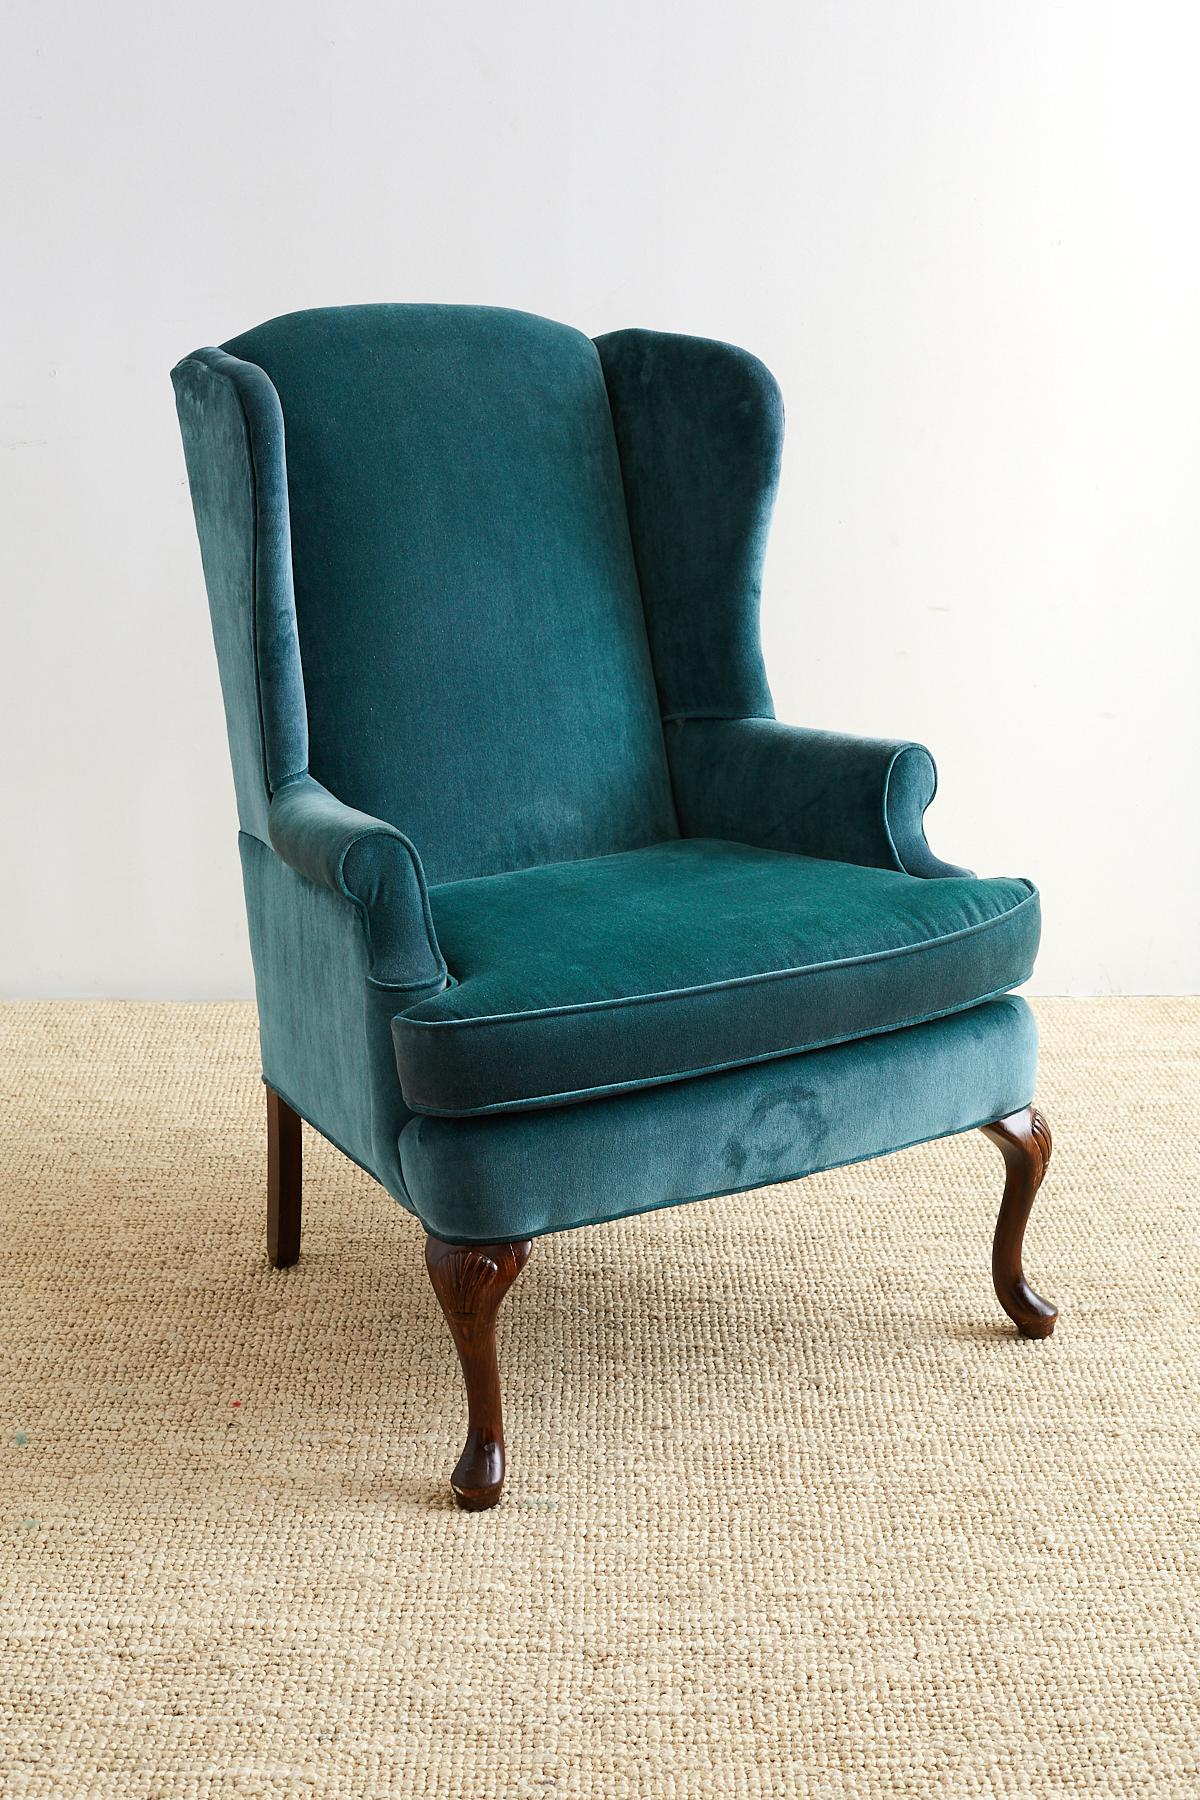 Charmant Queen Anne 20th Century Queen Anne Teal Velvet Wingback Armchair For Sale    Image 3 Of